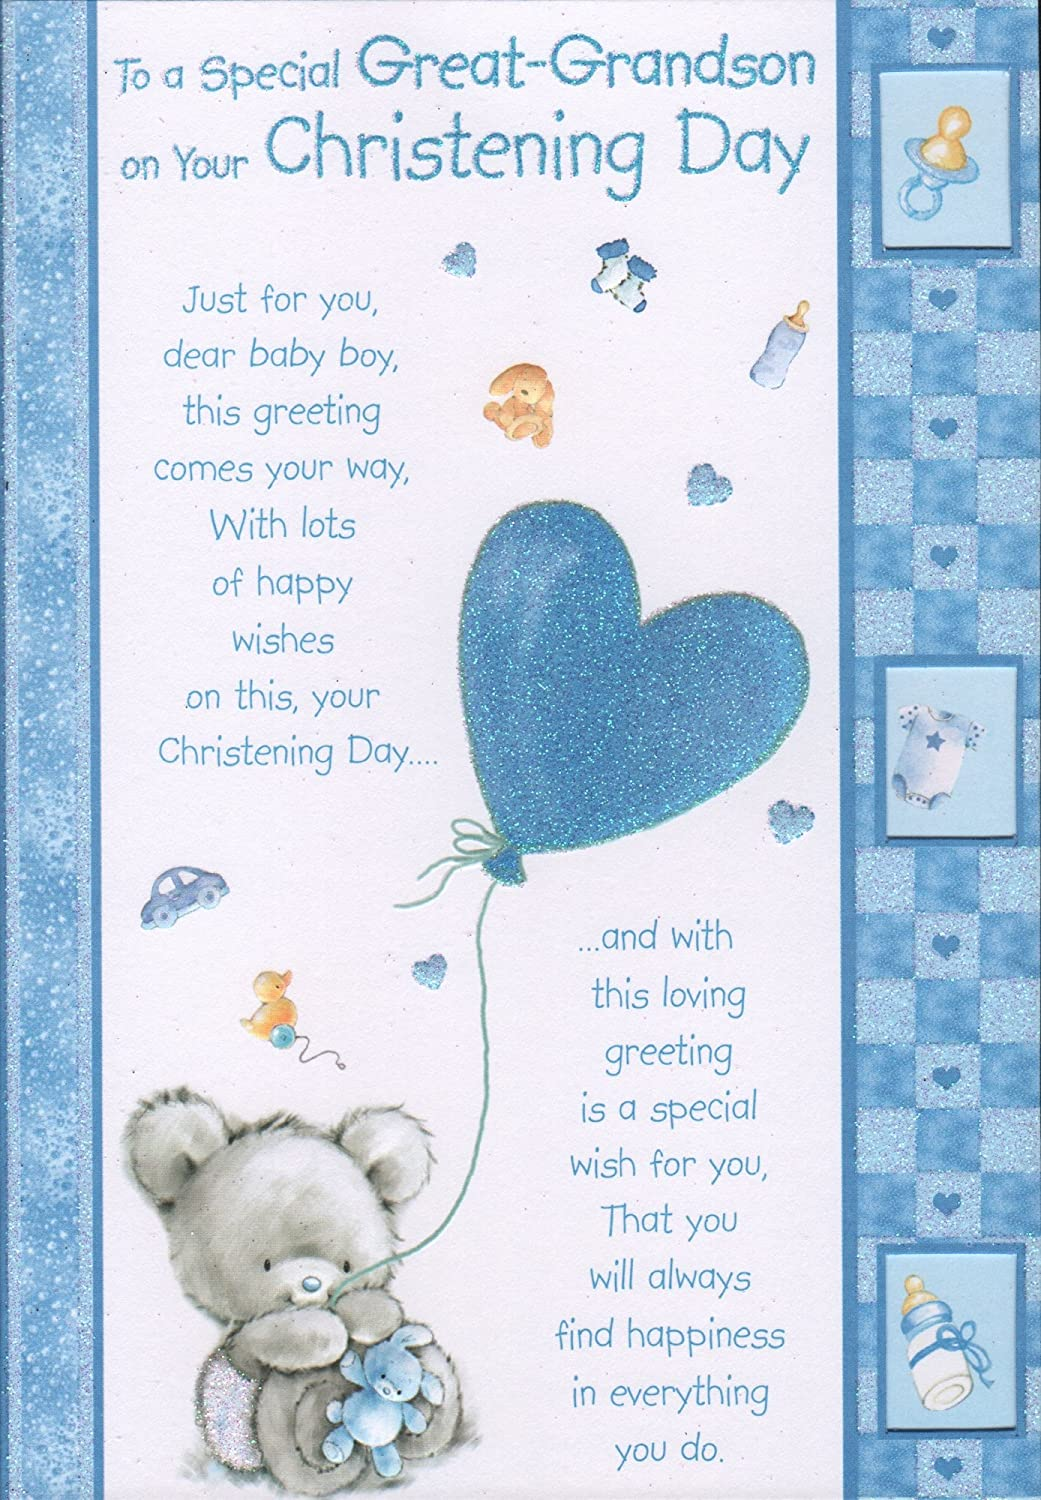 Great grandson christening card to a special great grandson on great grandson christening card to a special great grandson on your christening day amazon garden outdoors kristyandbryce Choice Image